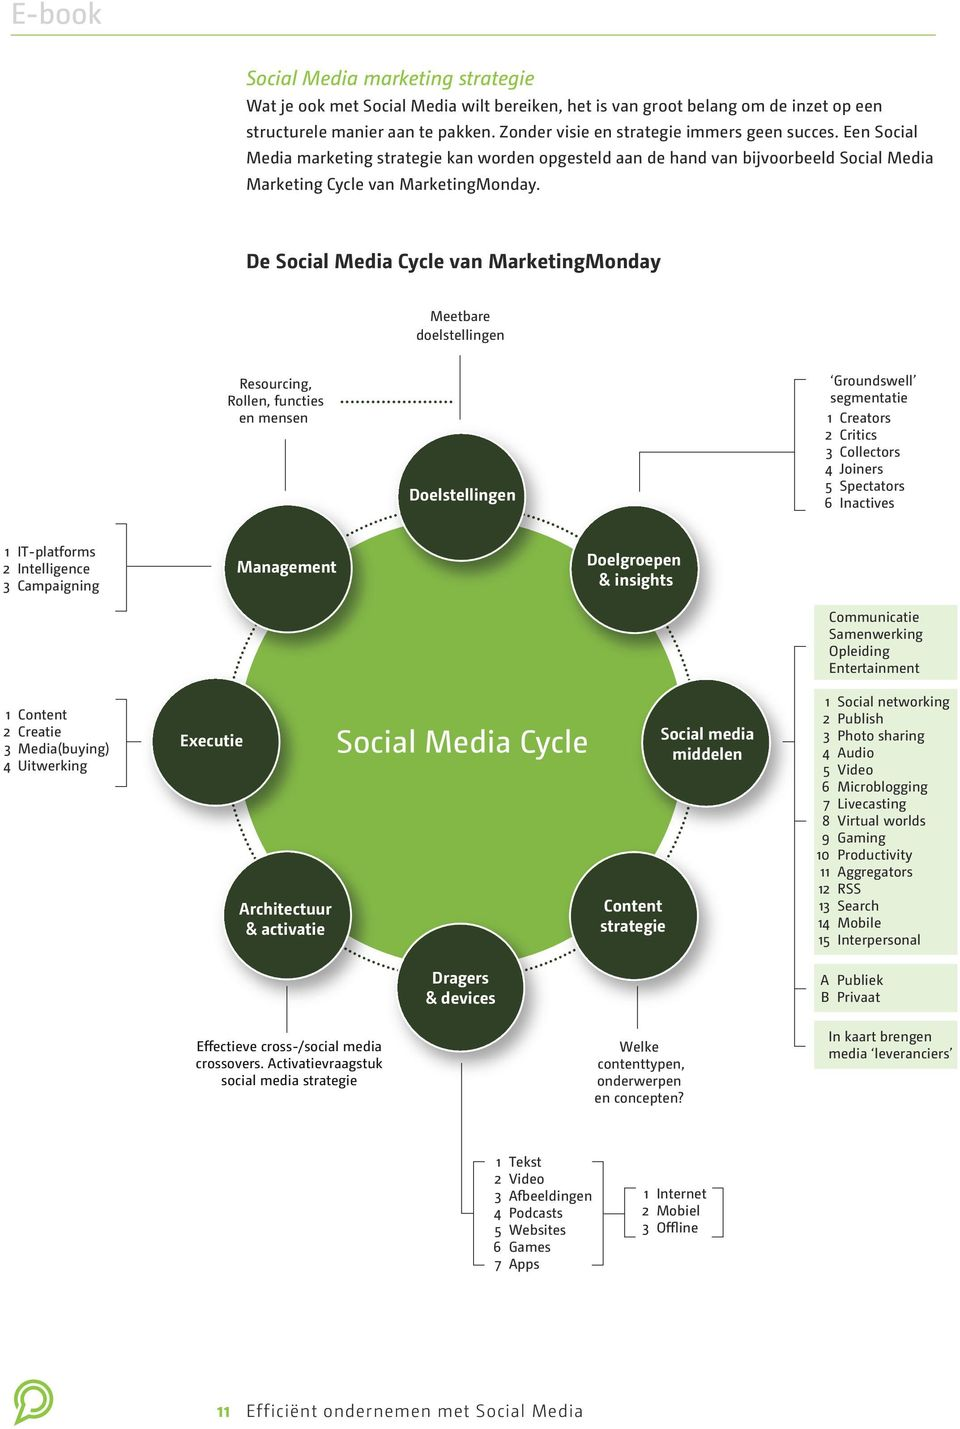 De Social Media Cycle van MarketingMonday Meetbare doelstellingen Resourcing, Rollen, functies en mensen Doelstellingen Groundswell segmentatie 1 Creators 2 Critics 3 Collectors 4 Joiners 5